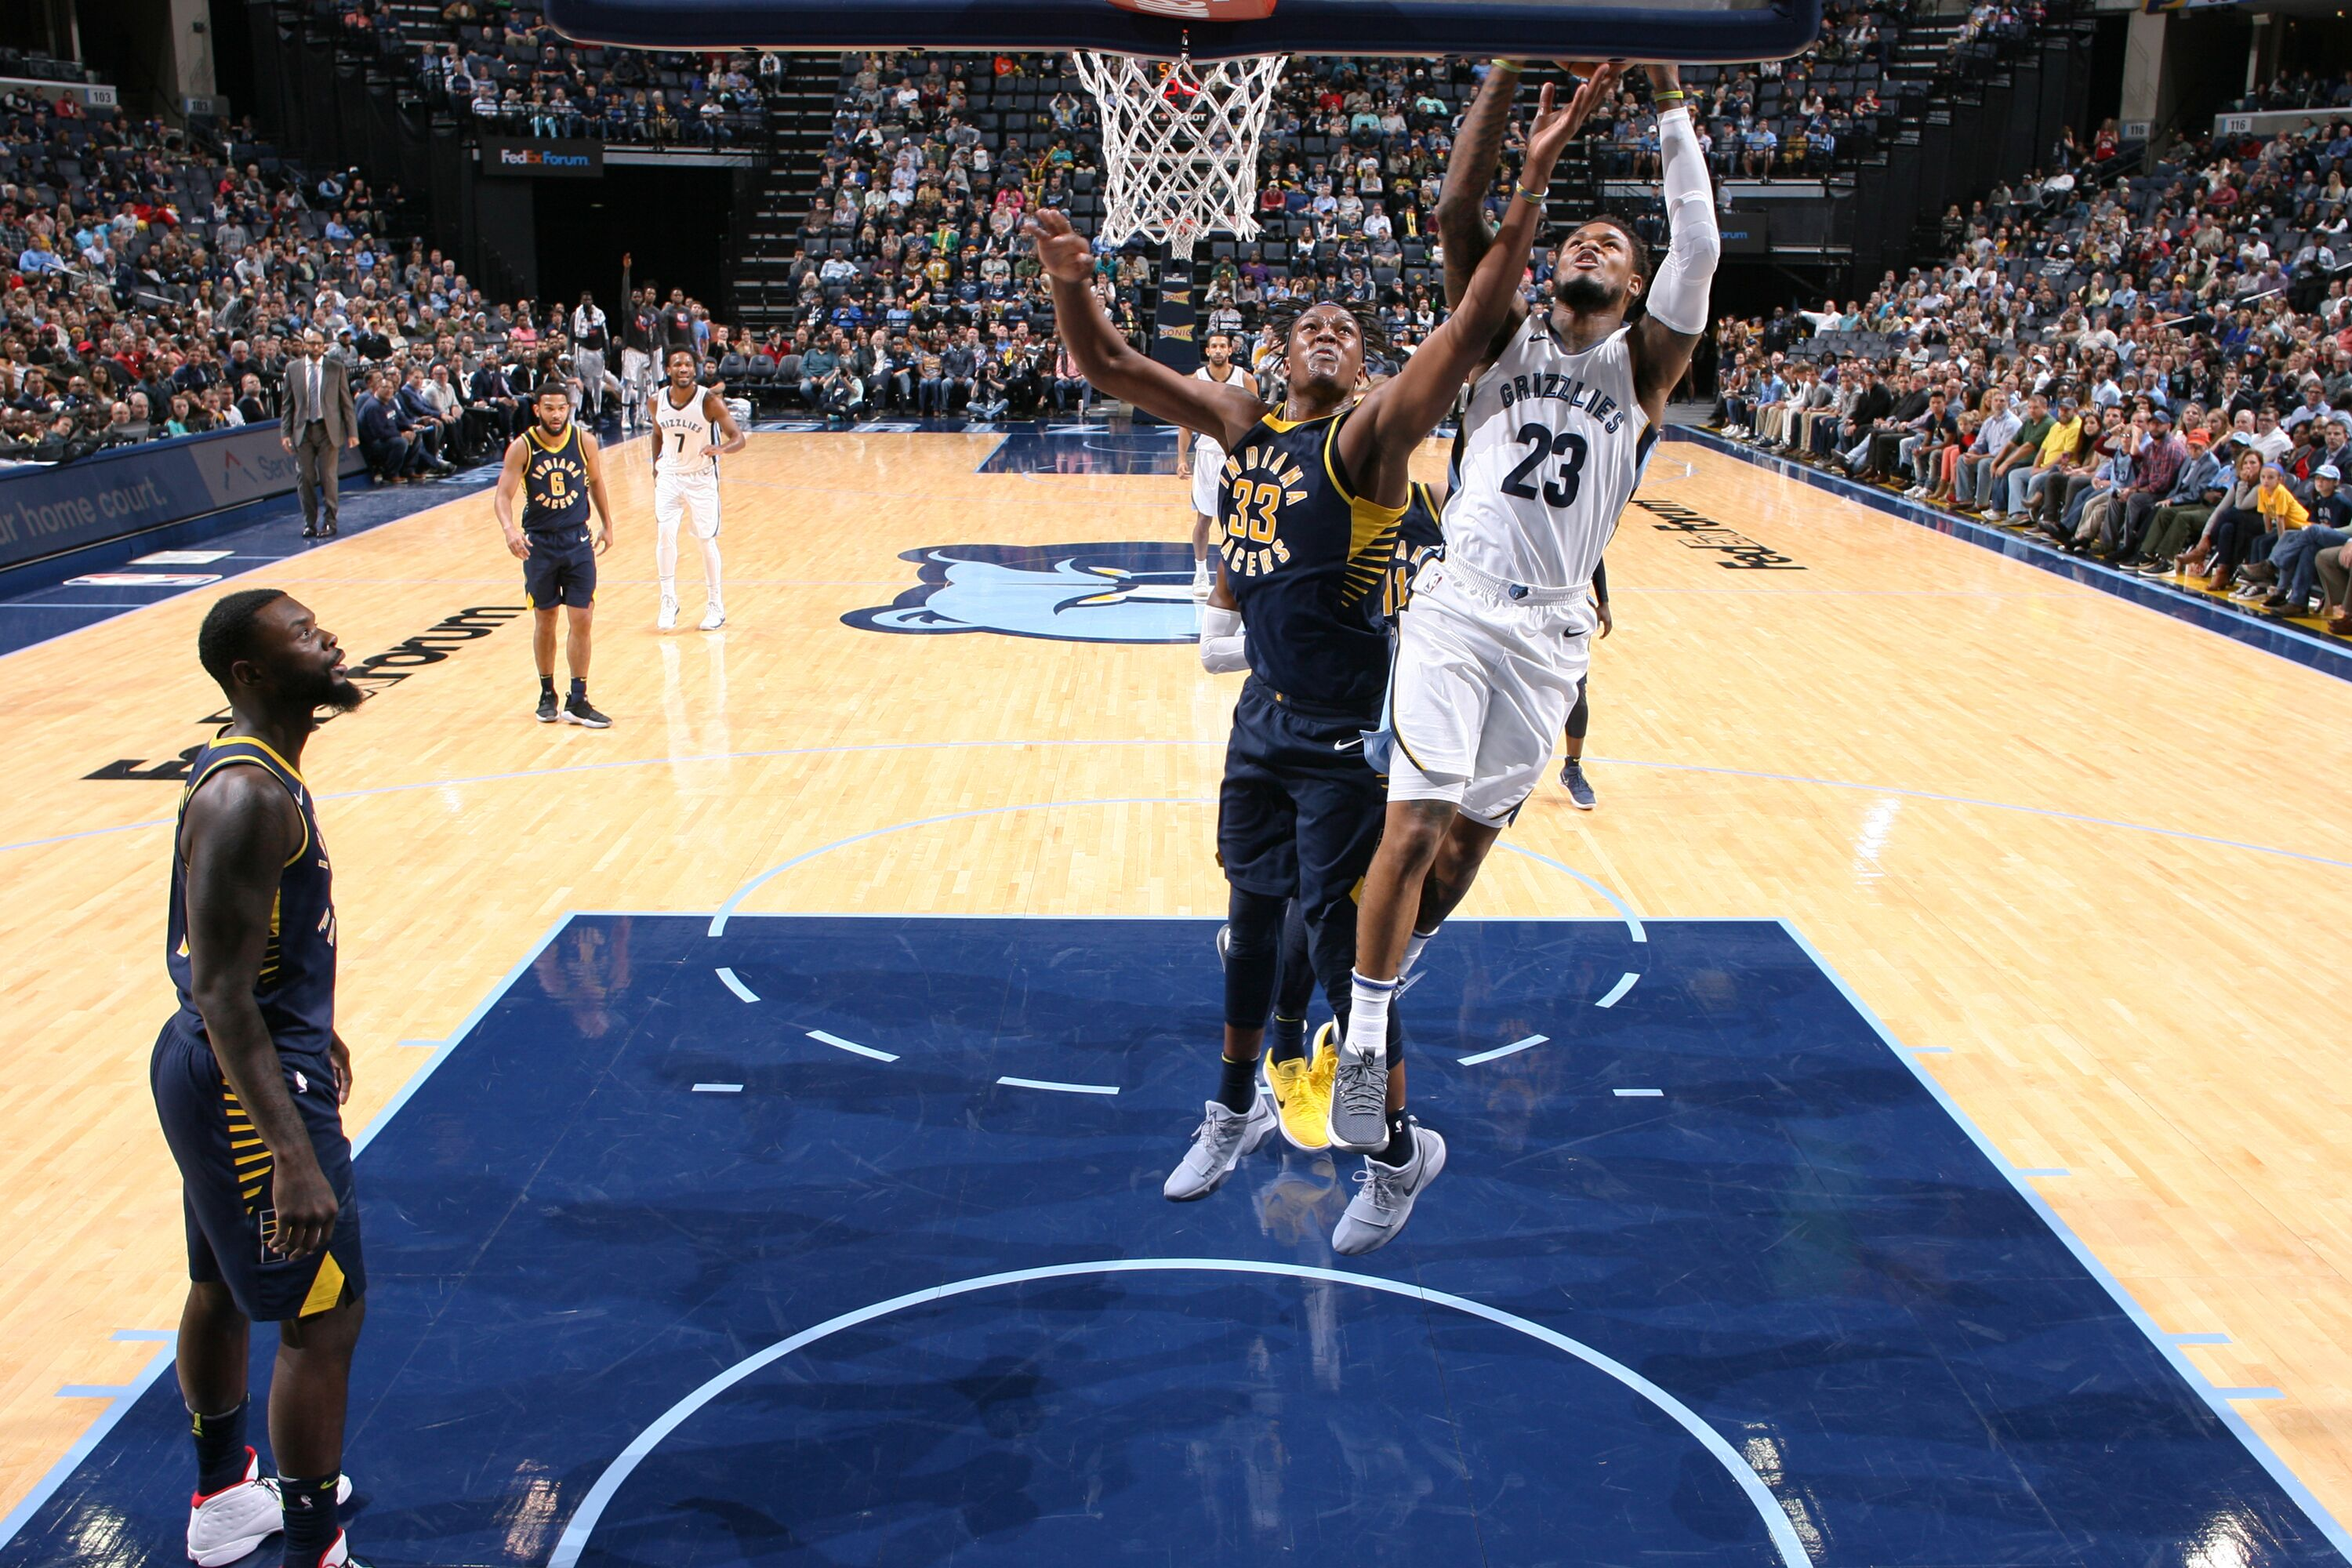 874717330-indiana-pacers-v-memphis-grizzlies.jpg